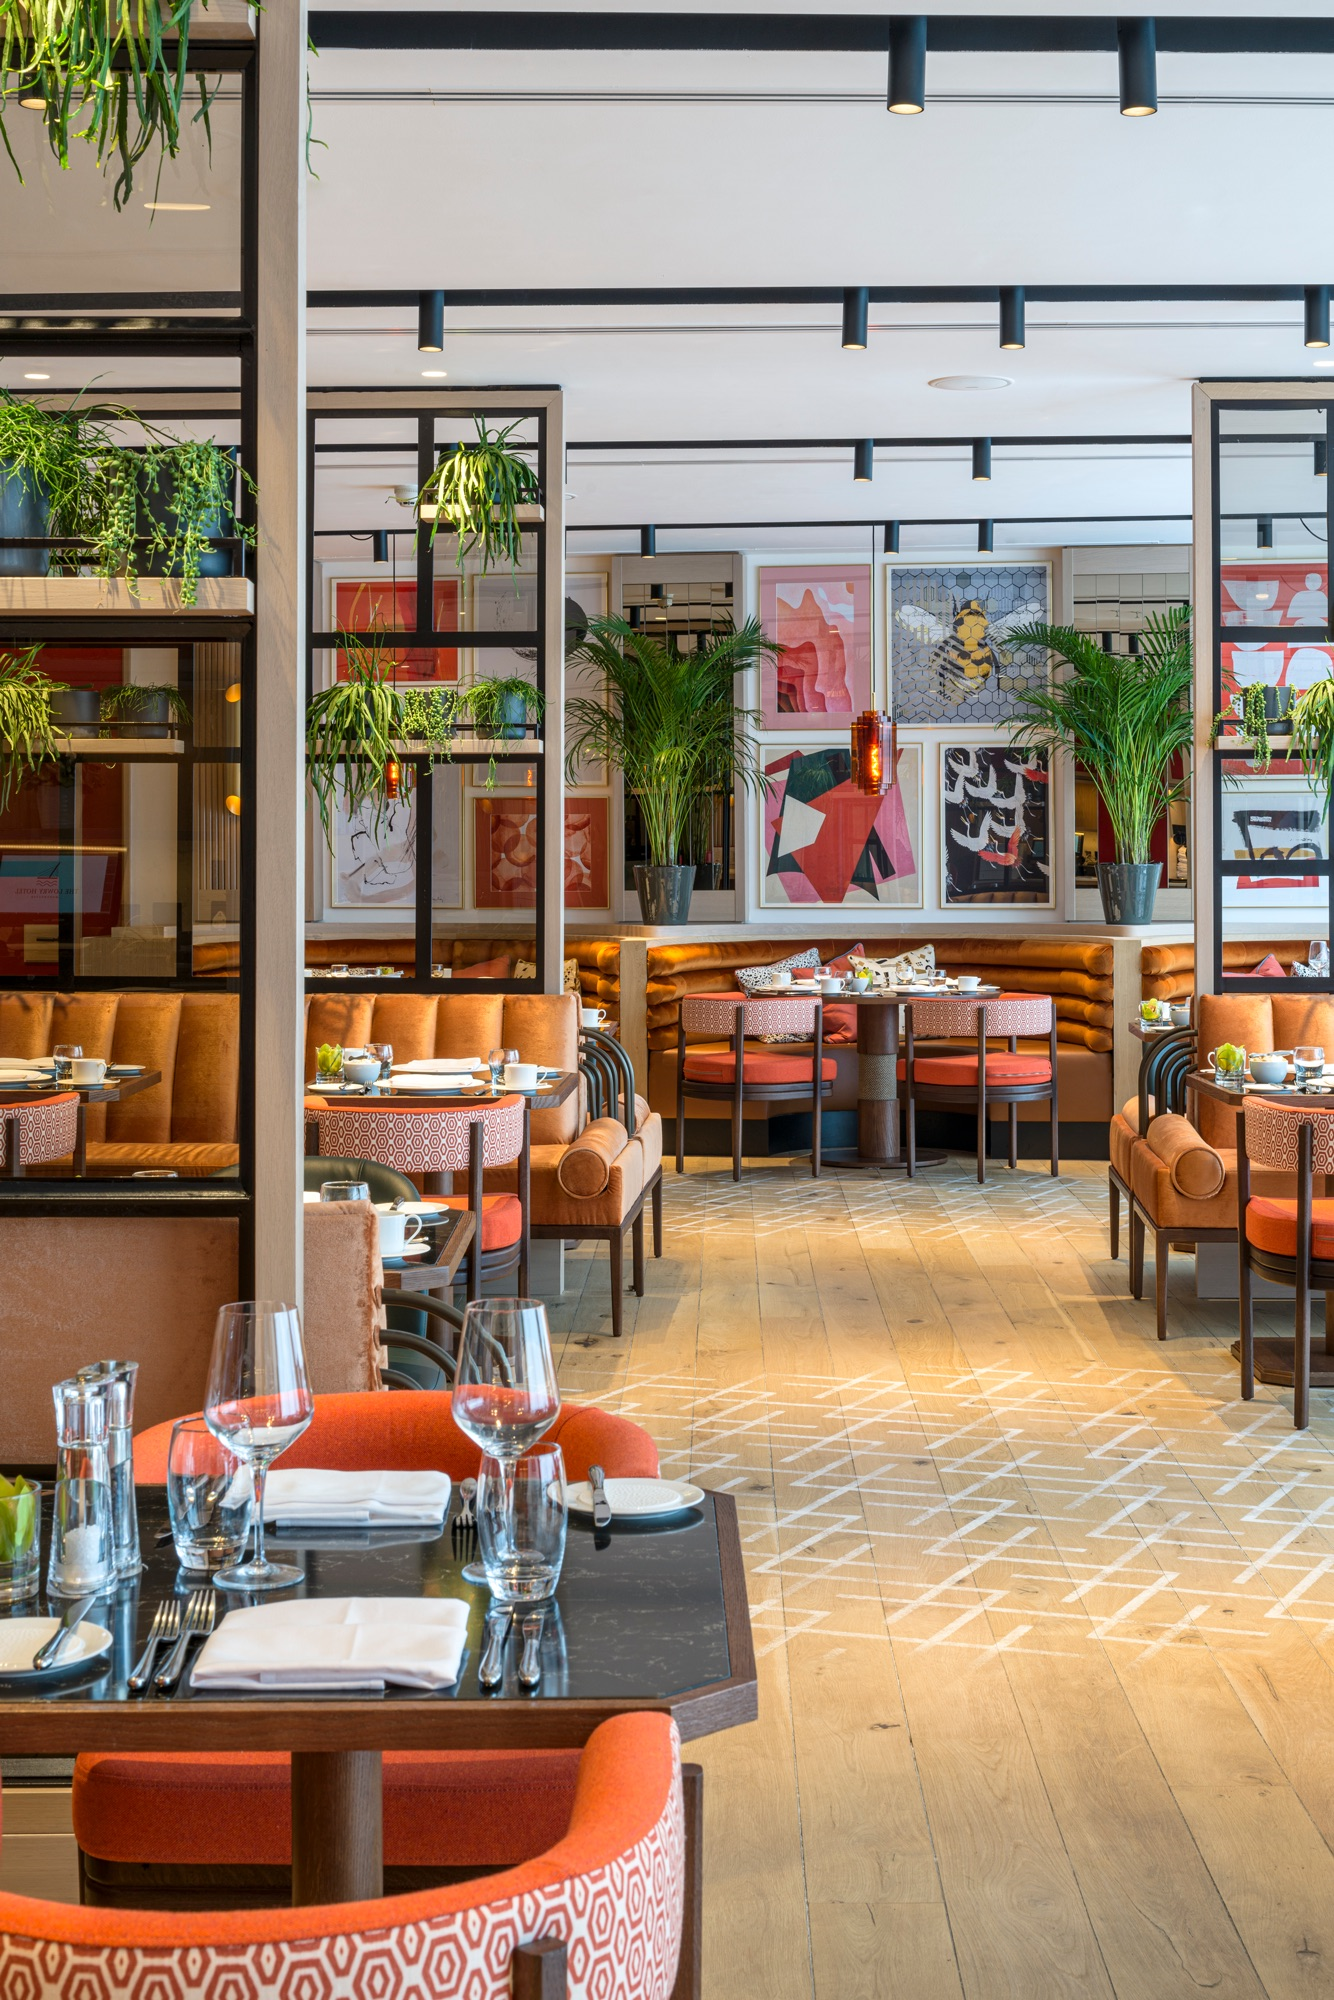 Image of The River Restaurant at The Lowry Hotel, Manchester